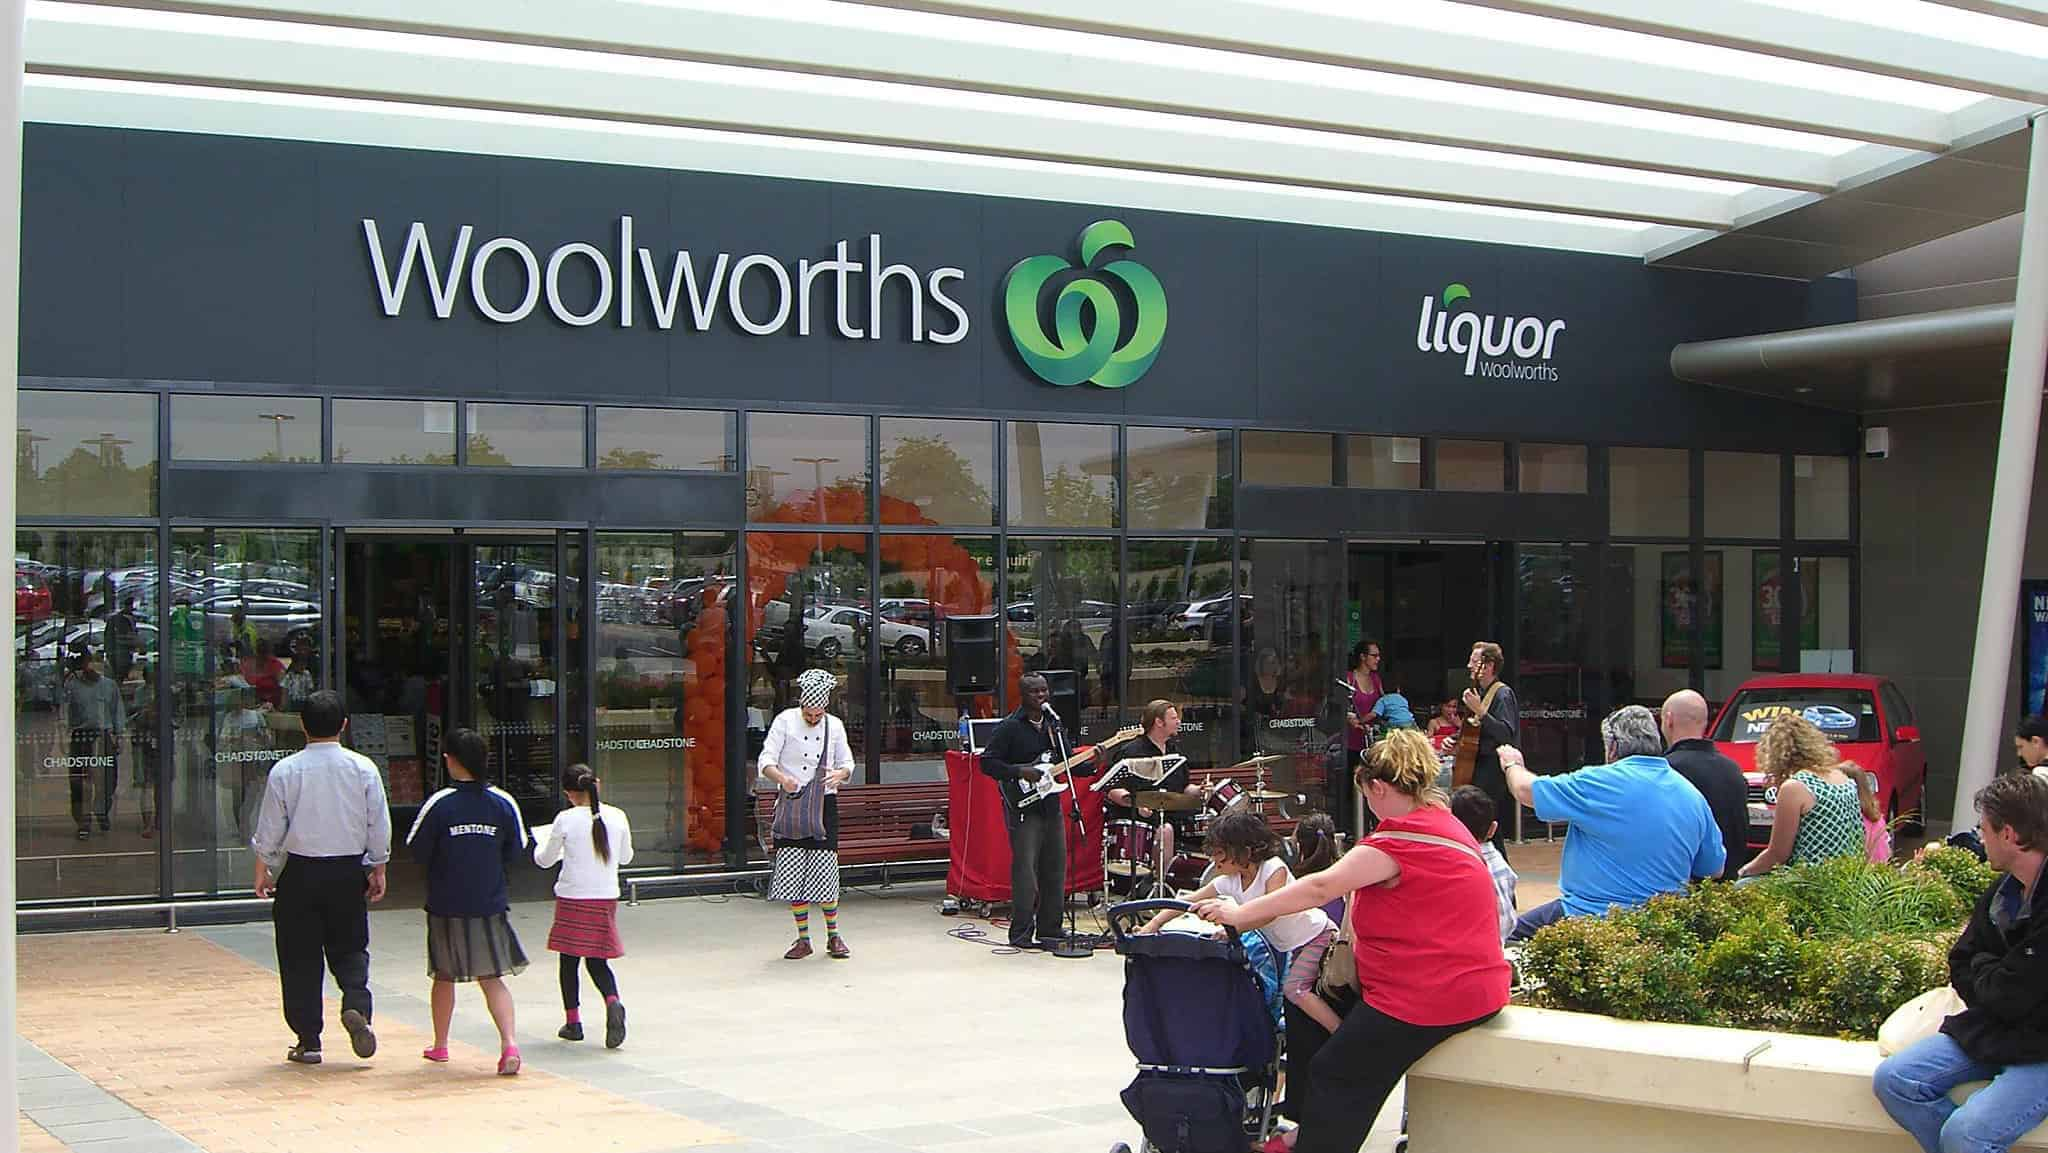 Woolworths share price